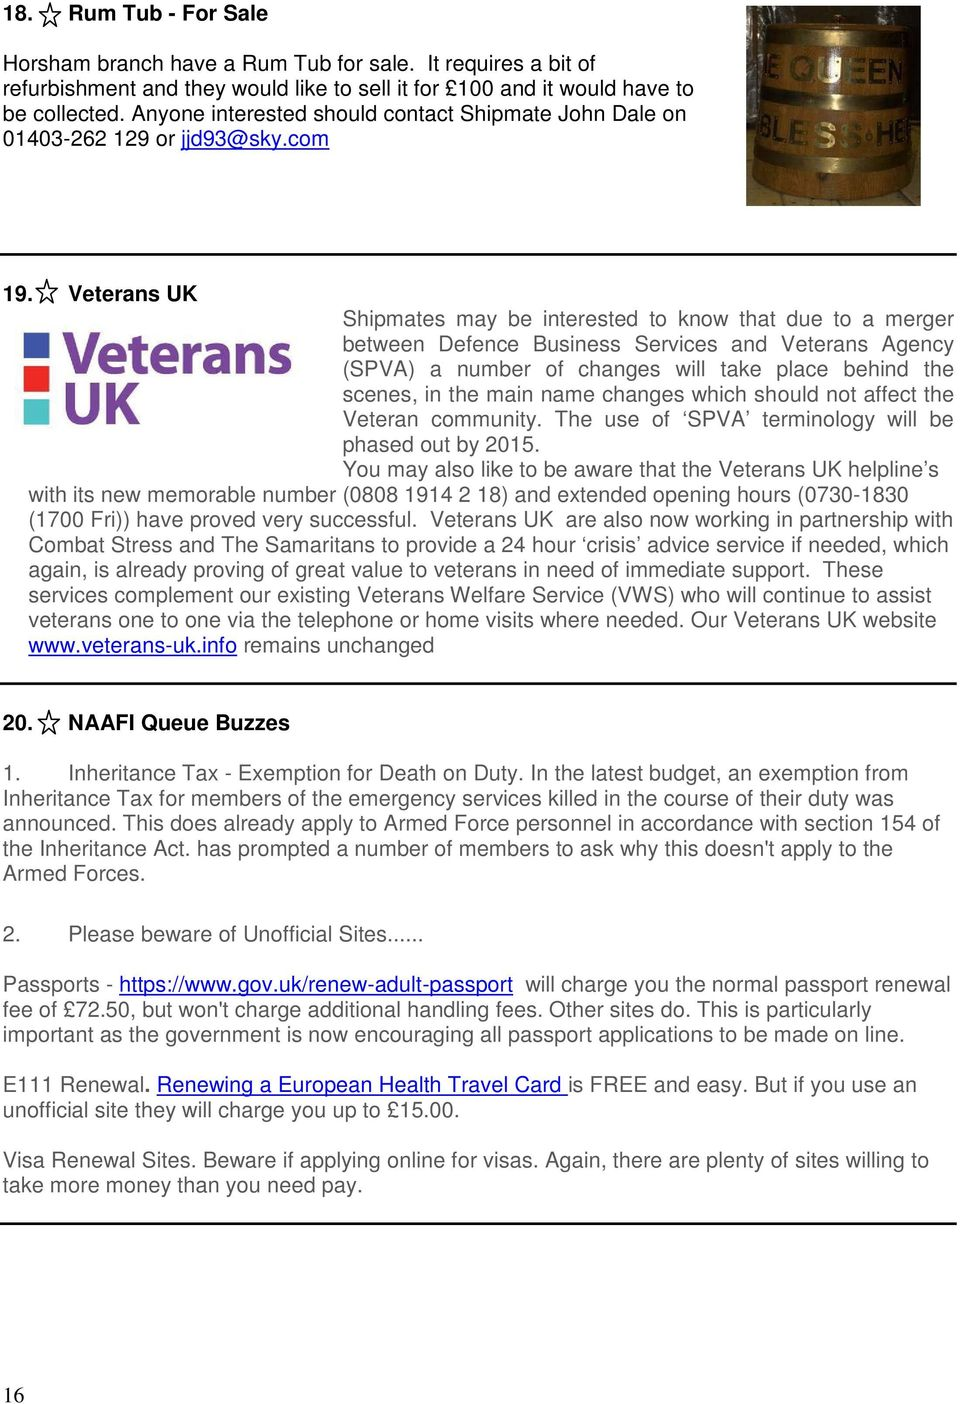 Veterans UK Shipmates may be interested to know that due to a merger between Defence Business Services and Veterans Agency (SPVA) a number of changes will take place behind the scenes, in the main